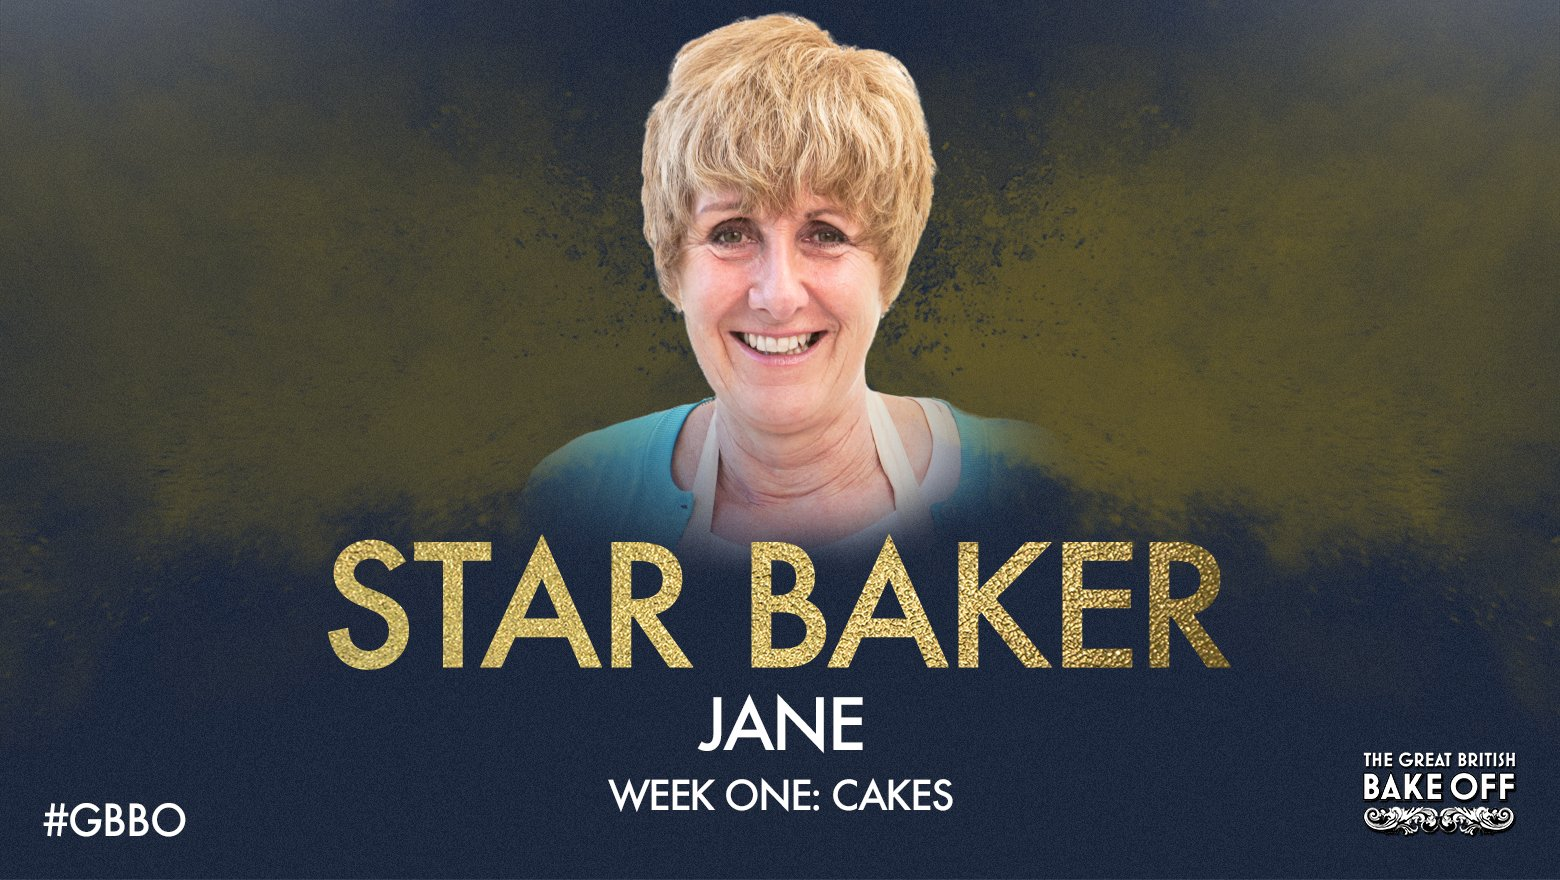 RT @BritishBakeOff: Congratulations to Jane - Cake Week's Star Baker! #GBBO https://t.co/gRSo8y7Cps